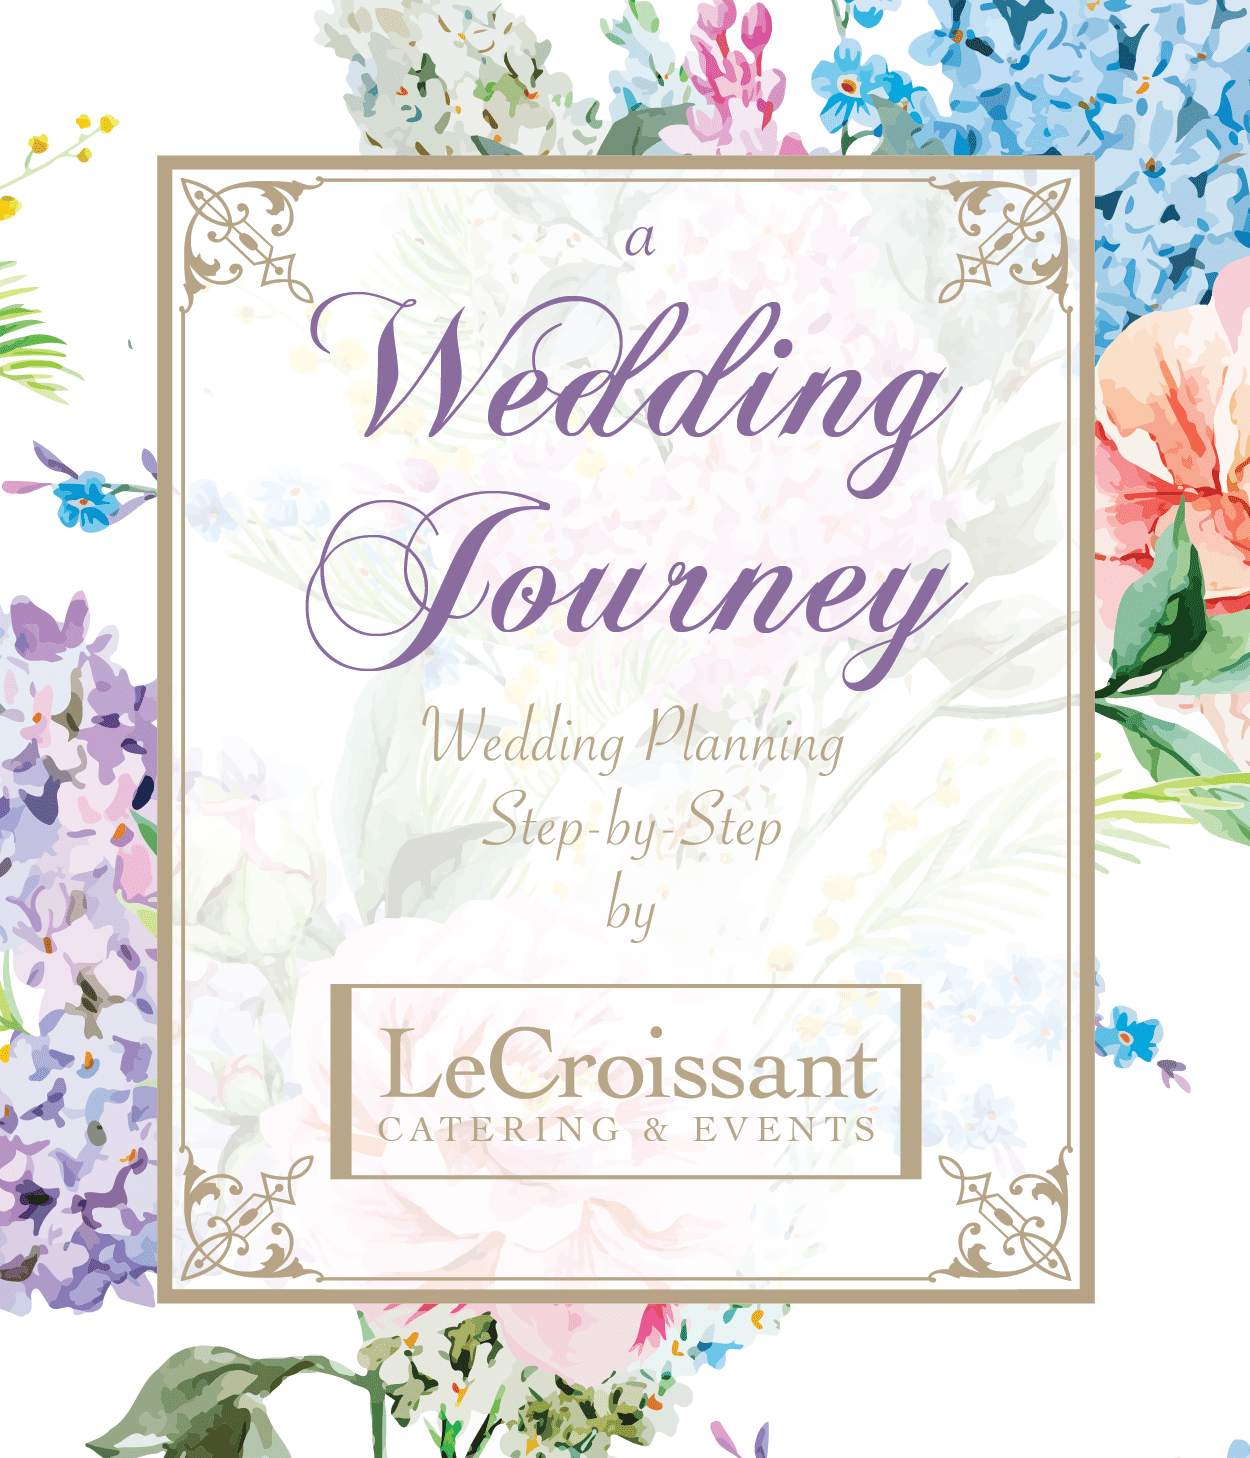 Wedding dress shopping advice with LeCroissant Catering & Events - Utah's Premier wedding caterer and wedding planner wedding dress shopping advice Wedding Dress Shopping Advice weddingjourneysquare 01